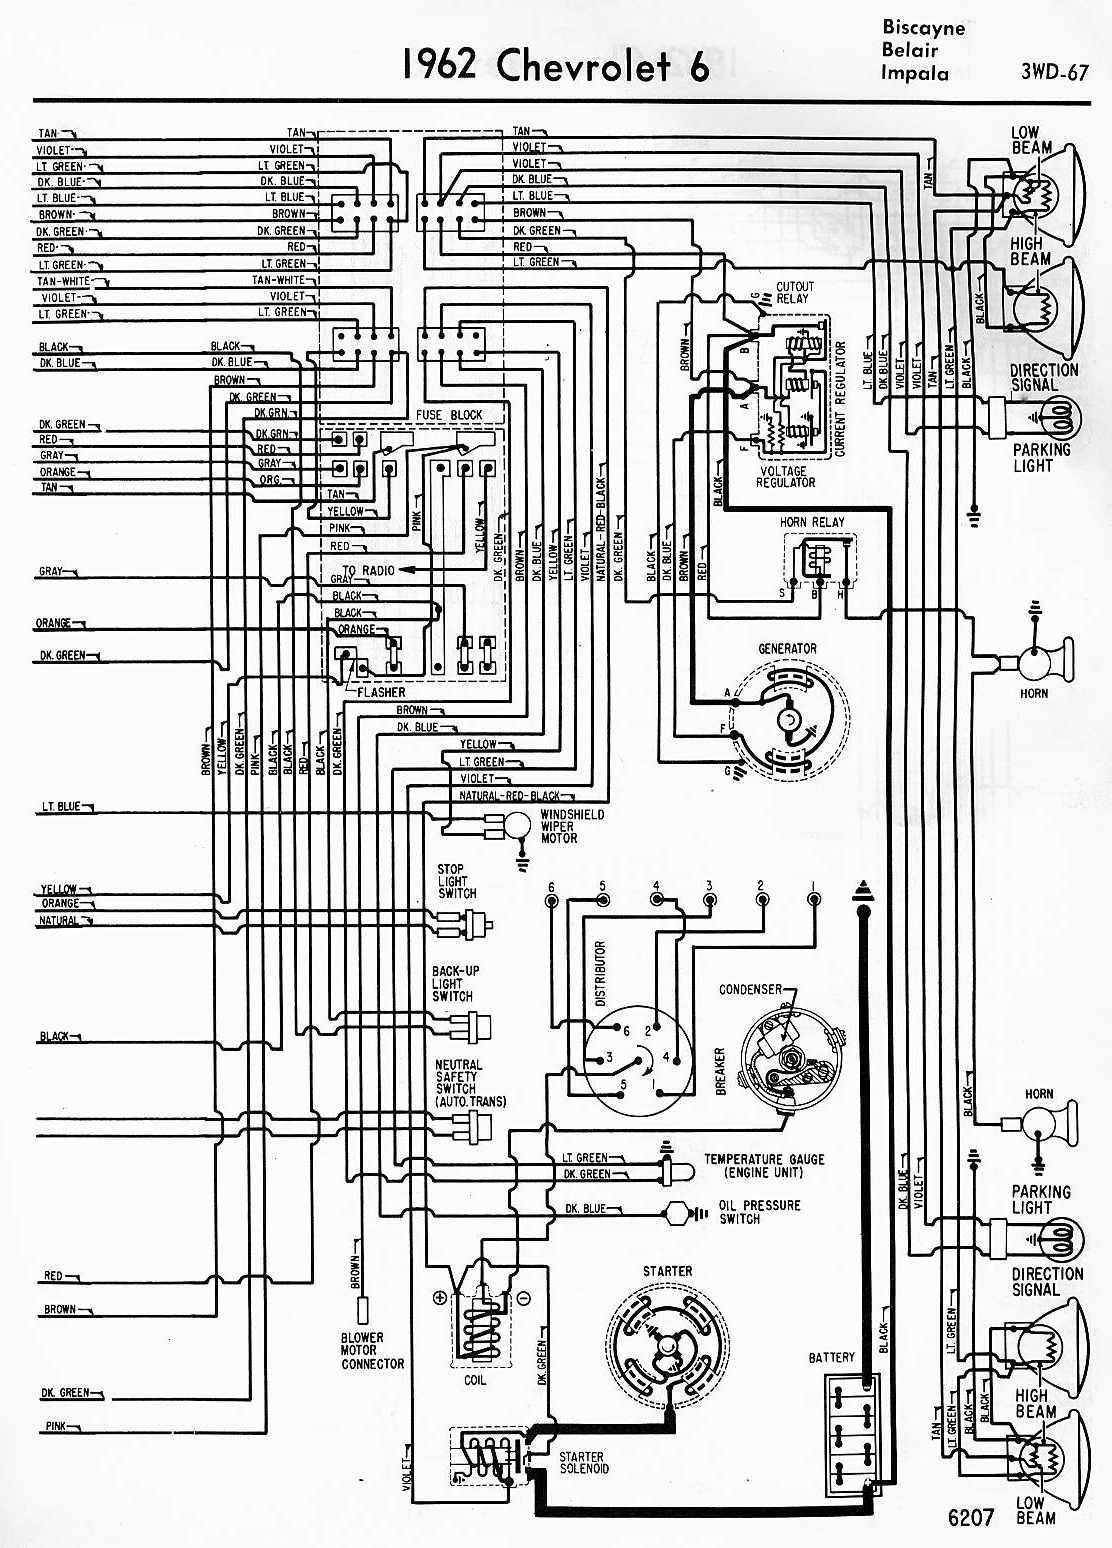 2005 chevy ignition switch wiring diagram data wiring diagram